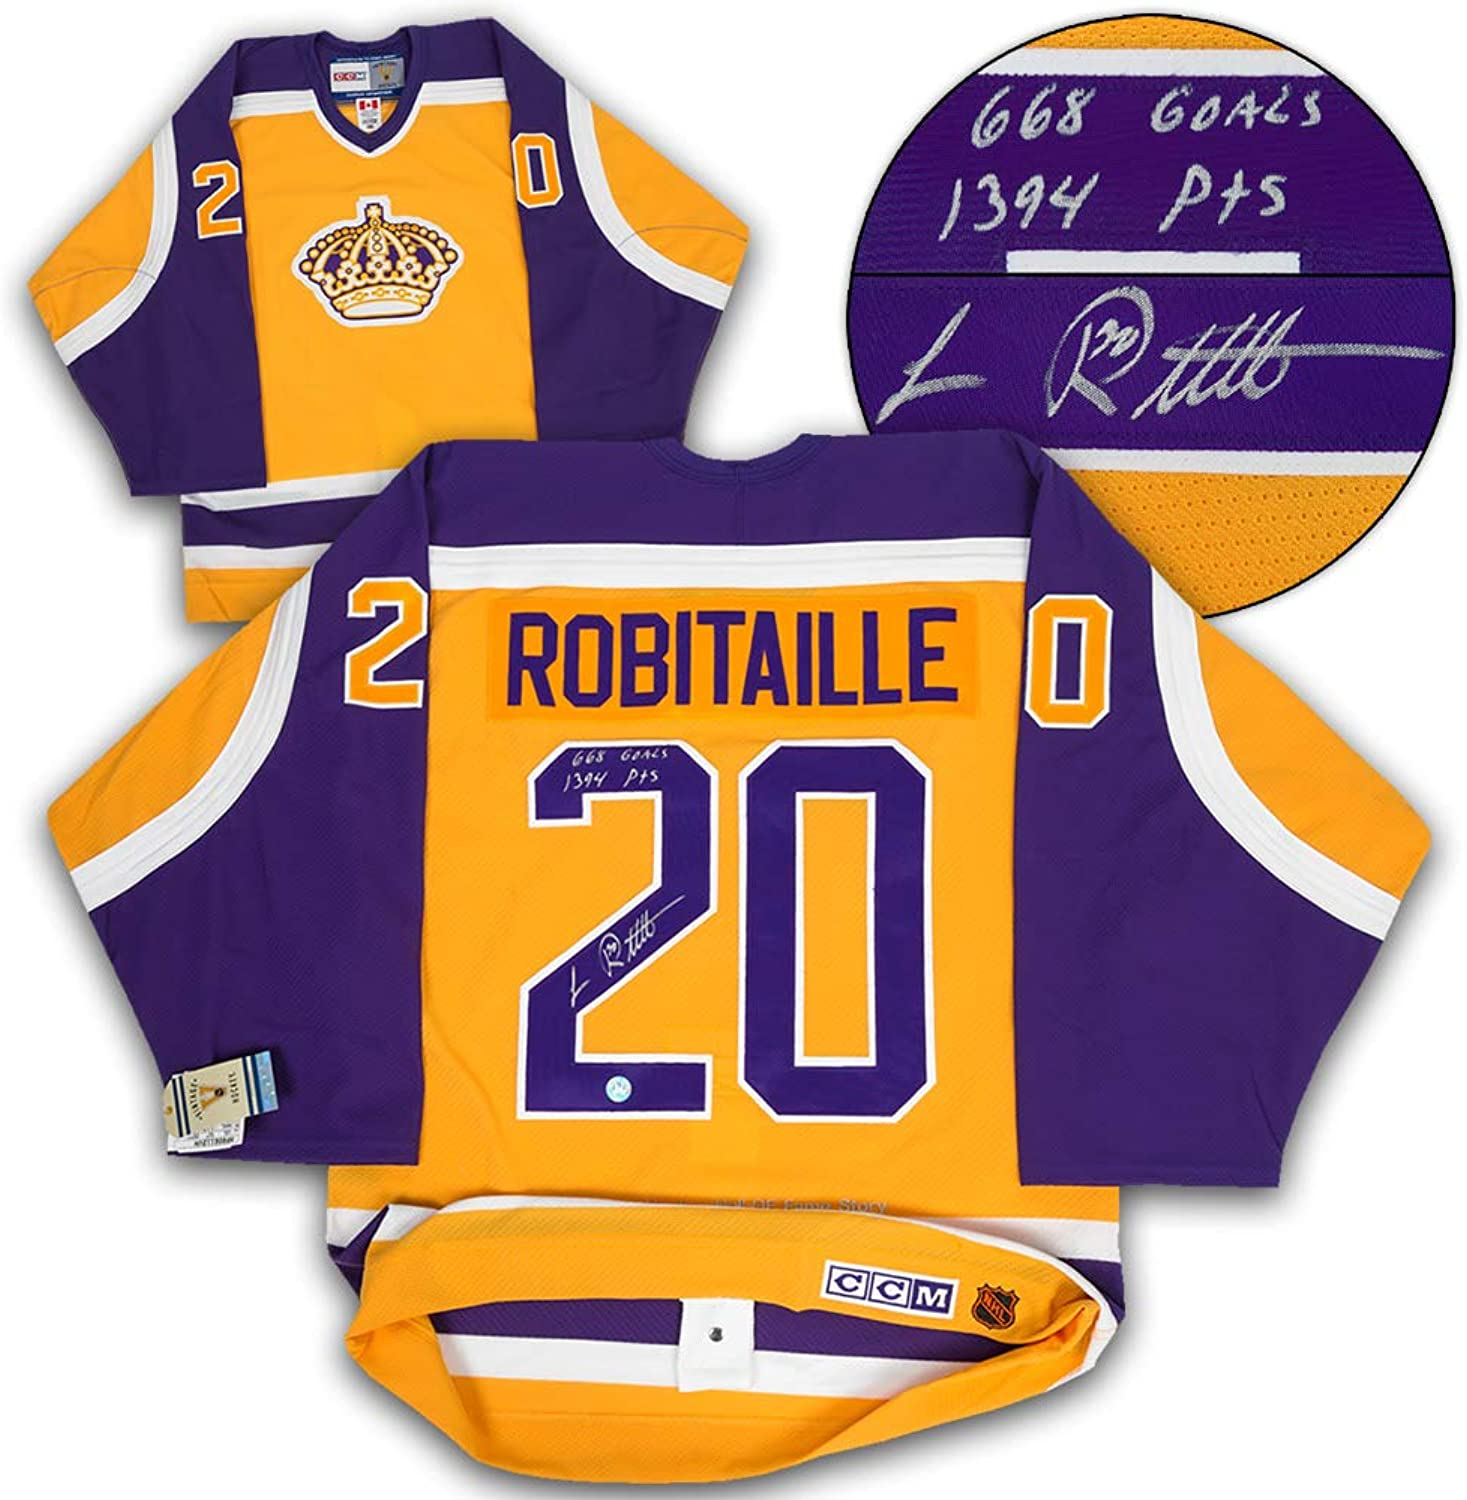 Luc Robisize L.A. Kings Signed & Inscribed Scoring Stats CCM Authentic Vintage Hockey Jersey